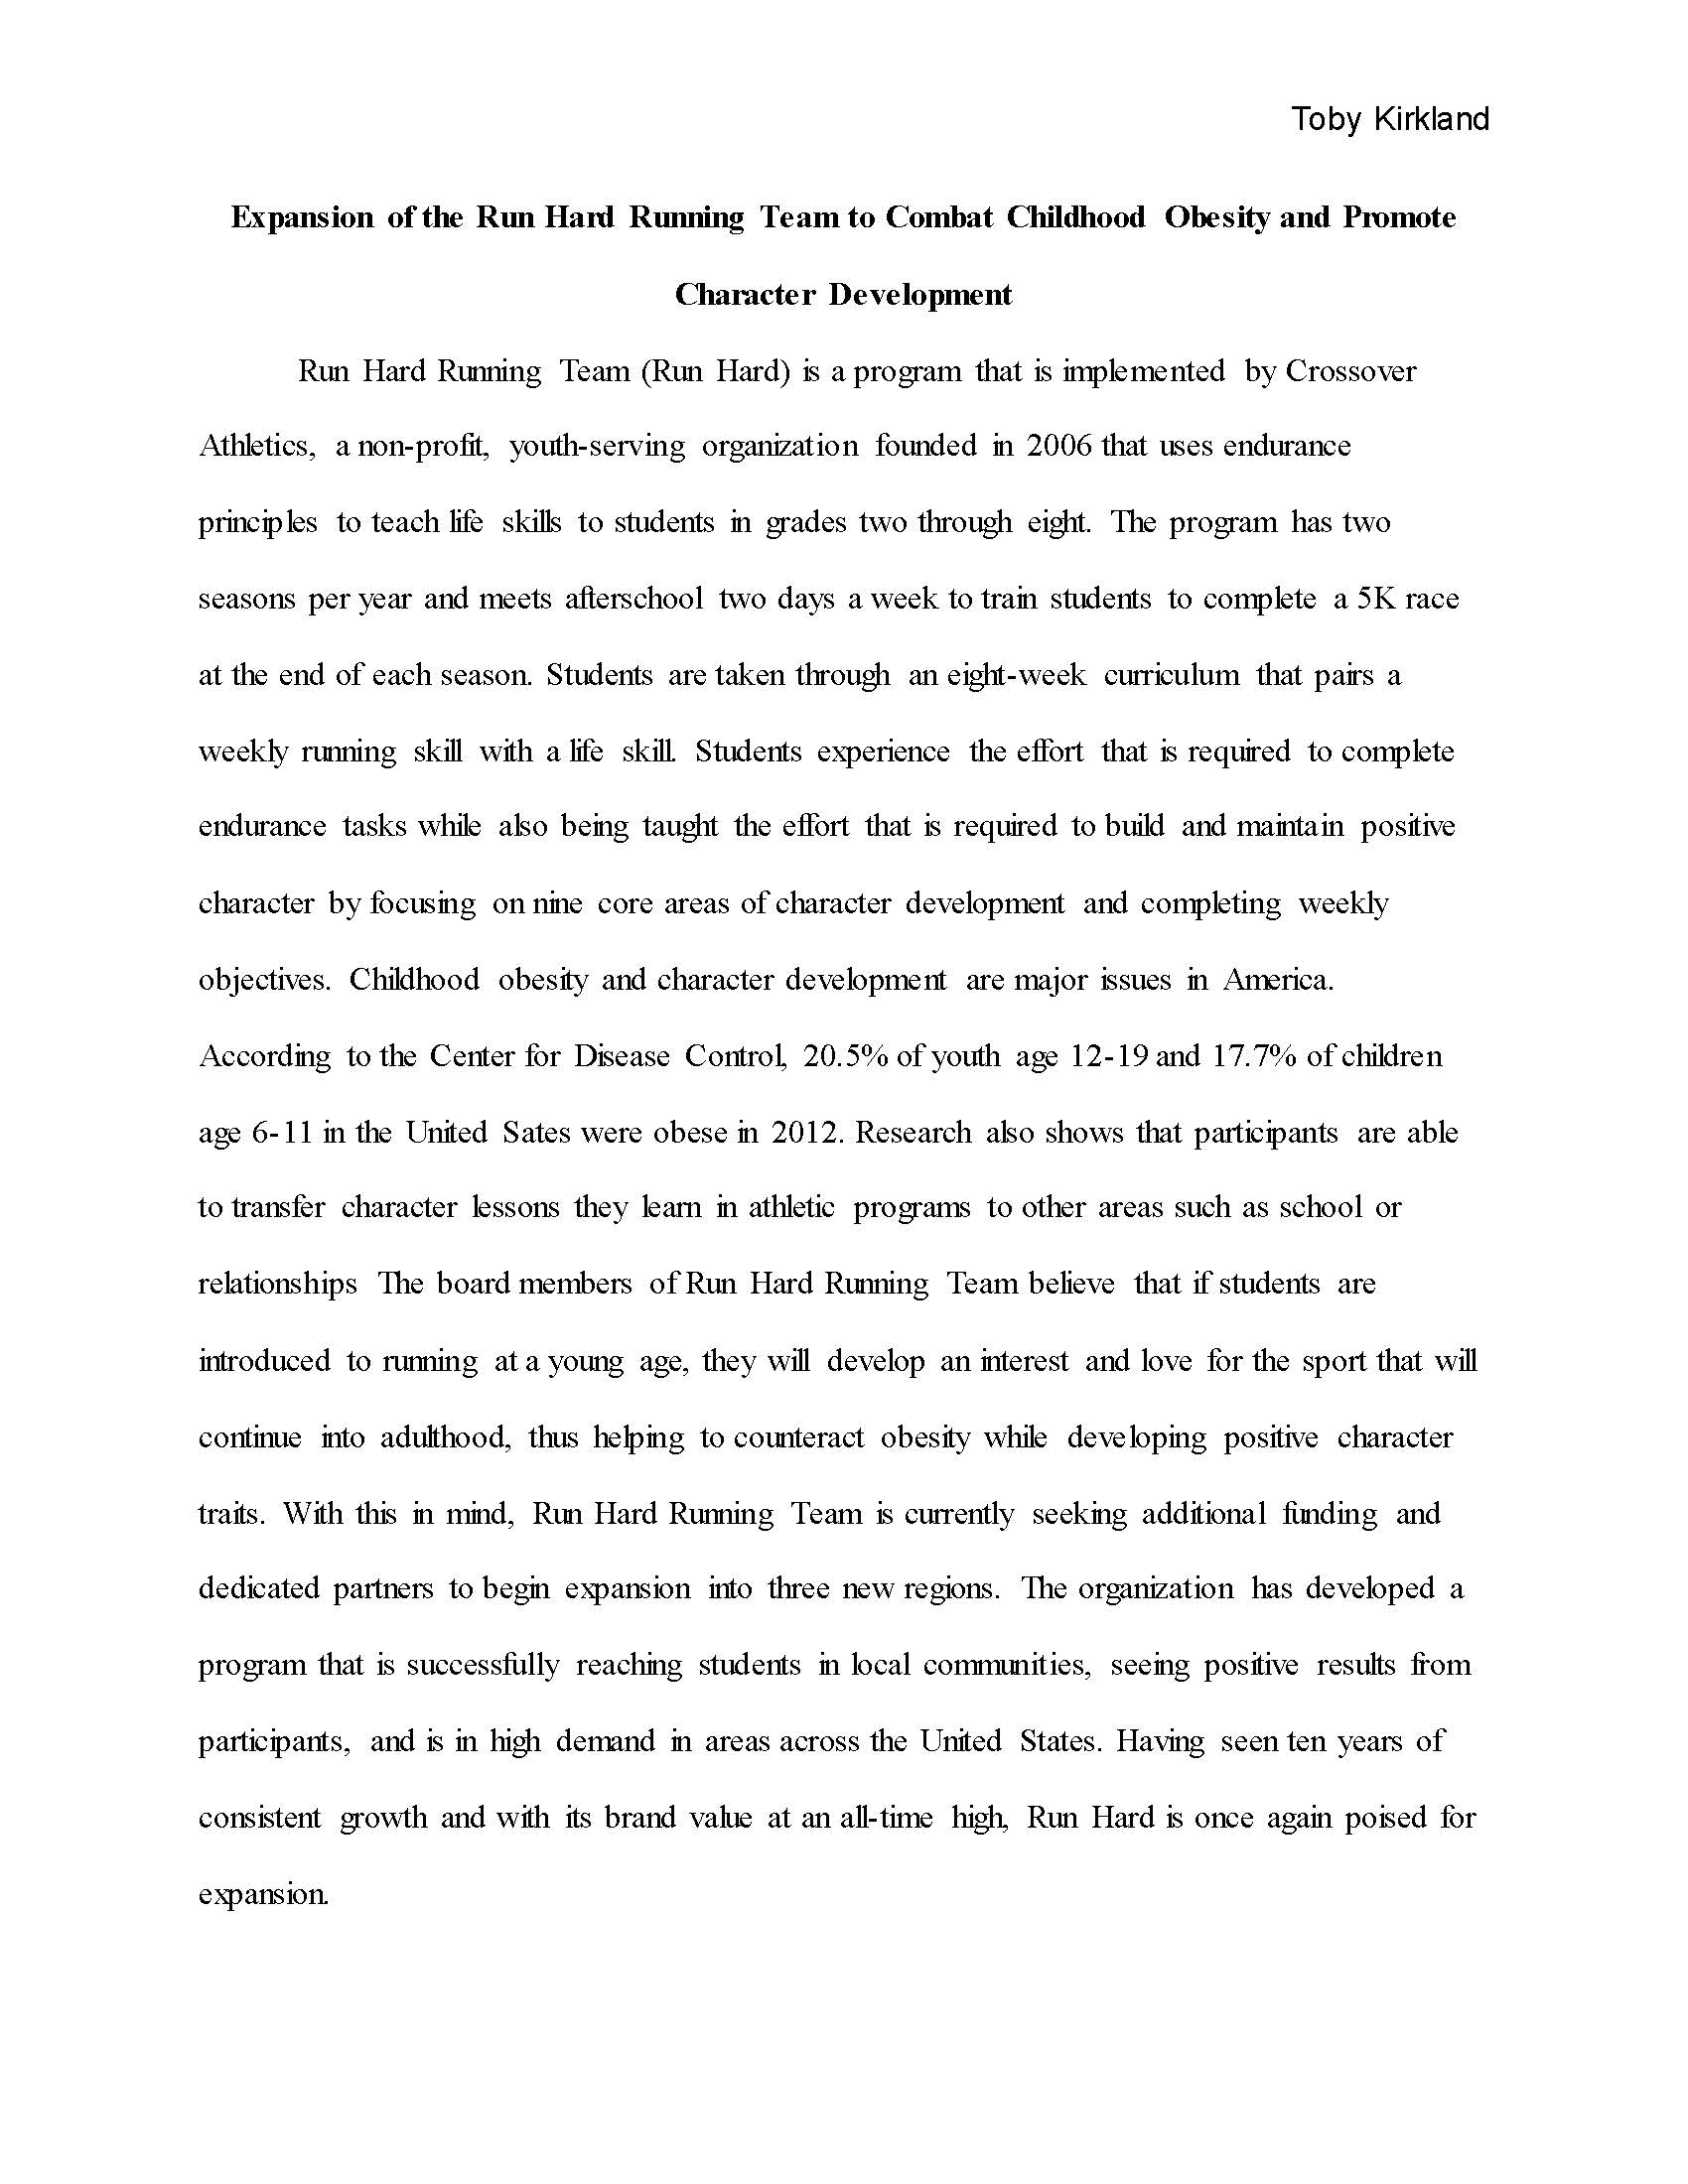 001 Obesity Essay Toby Kirkland Final Grant Proposal Page 01 Wondrous Paper Topics Childhood Hook Examples Full